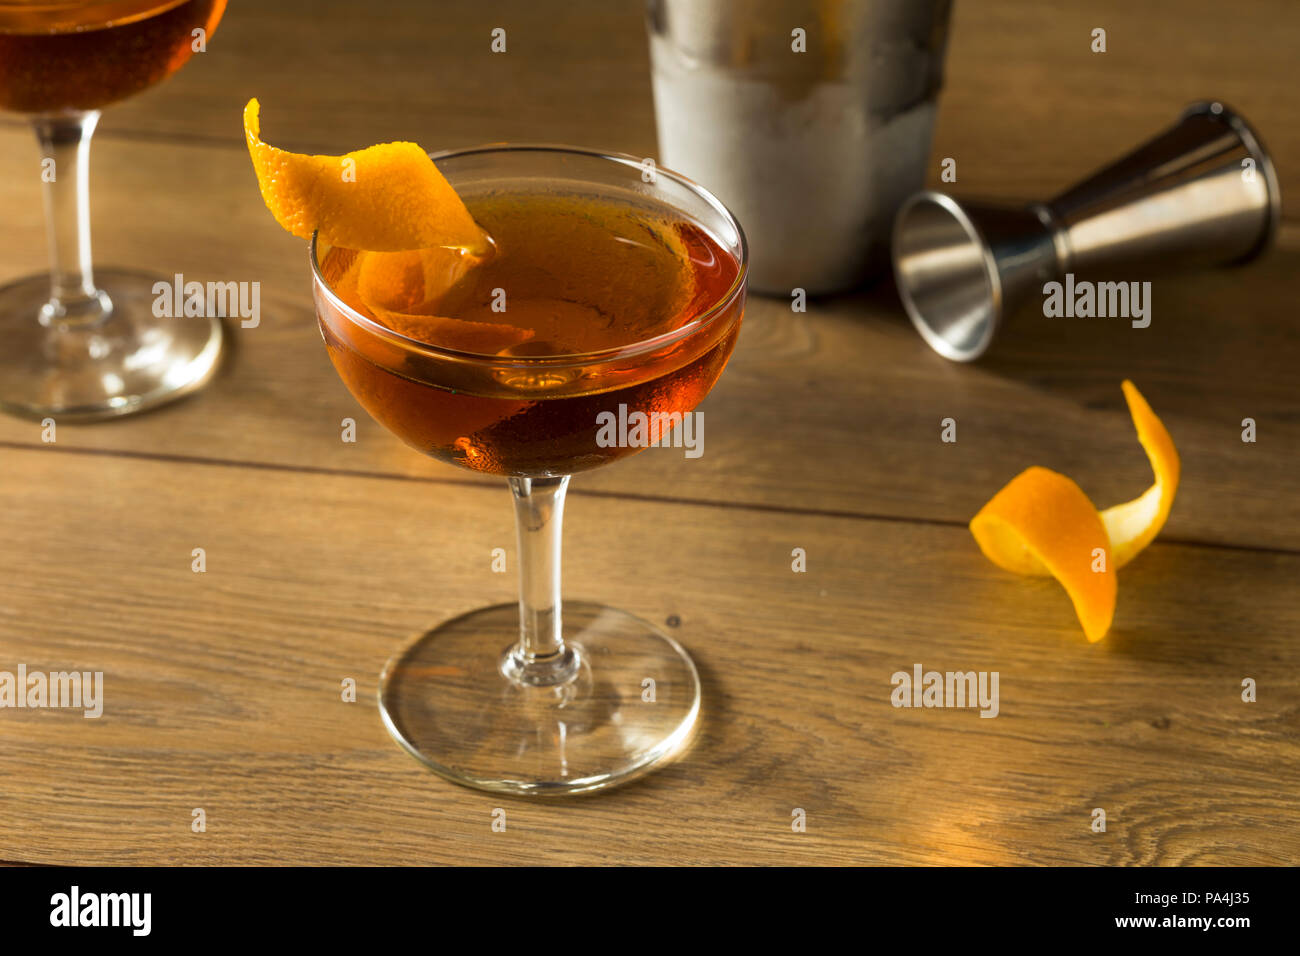 Alcoholic Martinez Cocktail with Gin Vermouth and Orange Peel - Stock Image